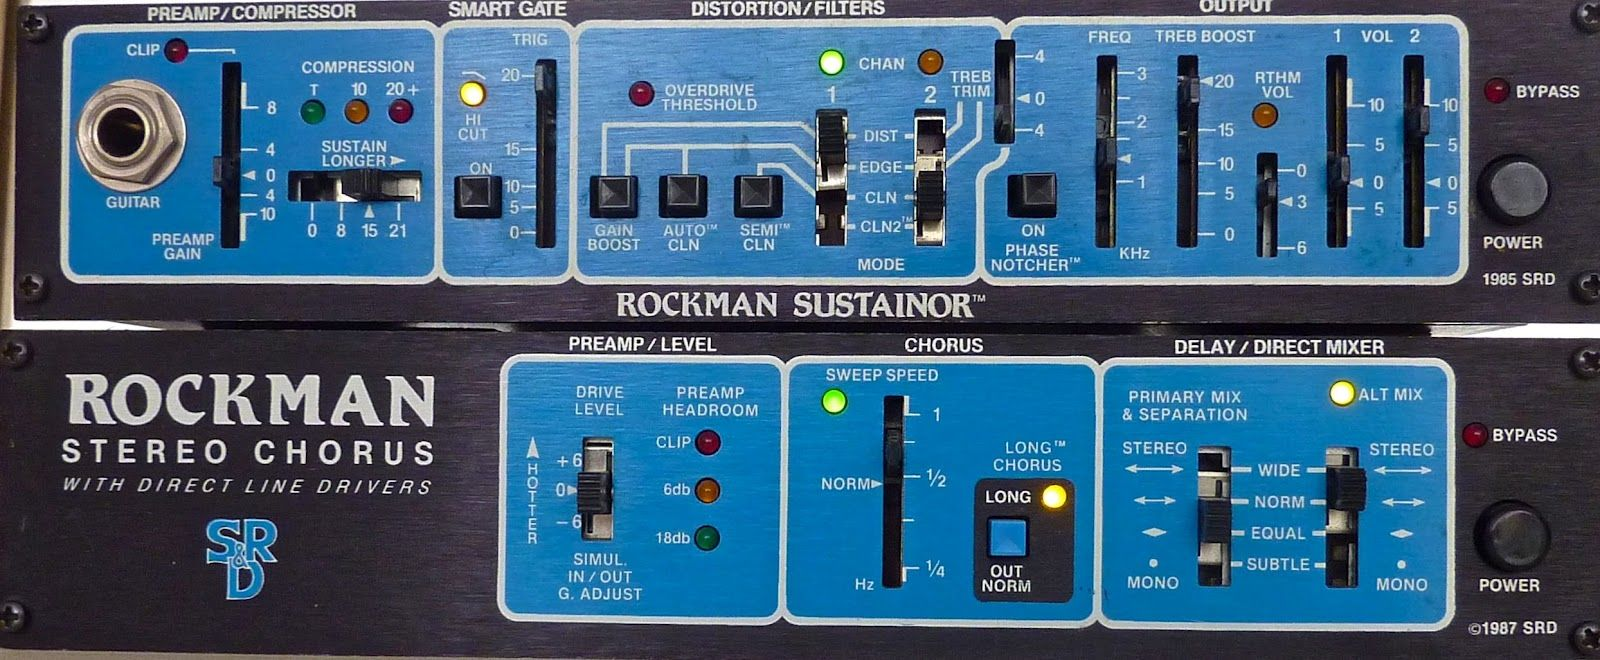 Pin By Raymond Britt On Instrumental Instruments Pinterest Circuits Gt Boss Dd 2 Digital Delay Guitar Pedal Schematic Diagram Scholz Rockman Effects Units Sustainer And Stereo Chorus Http